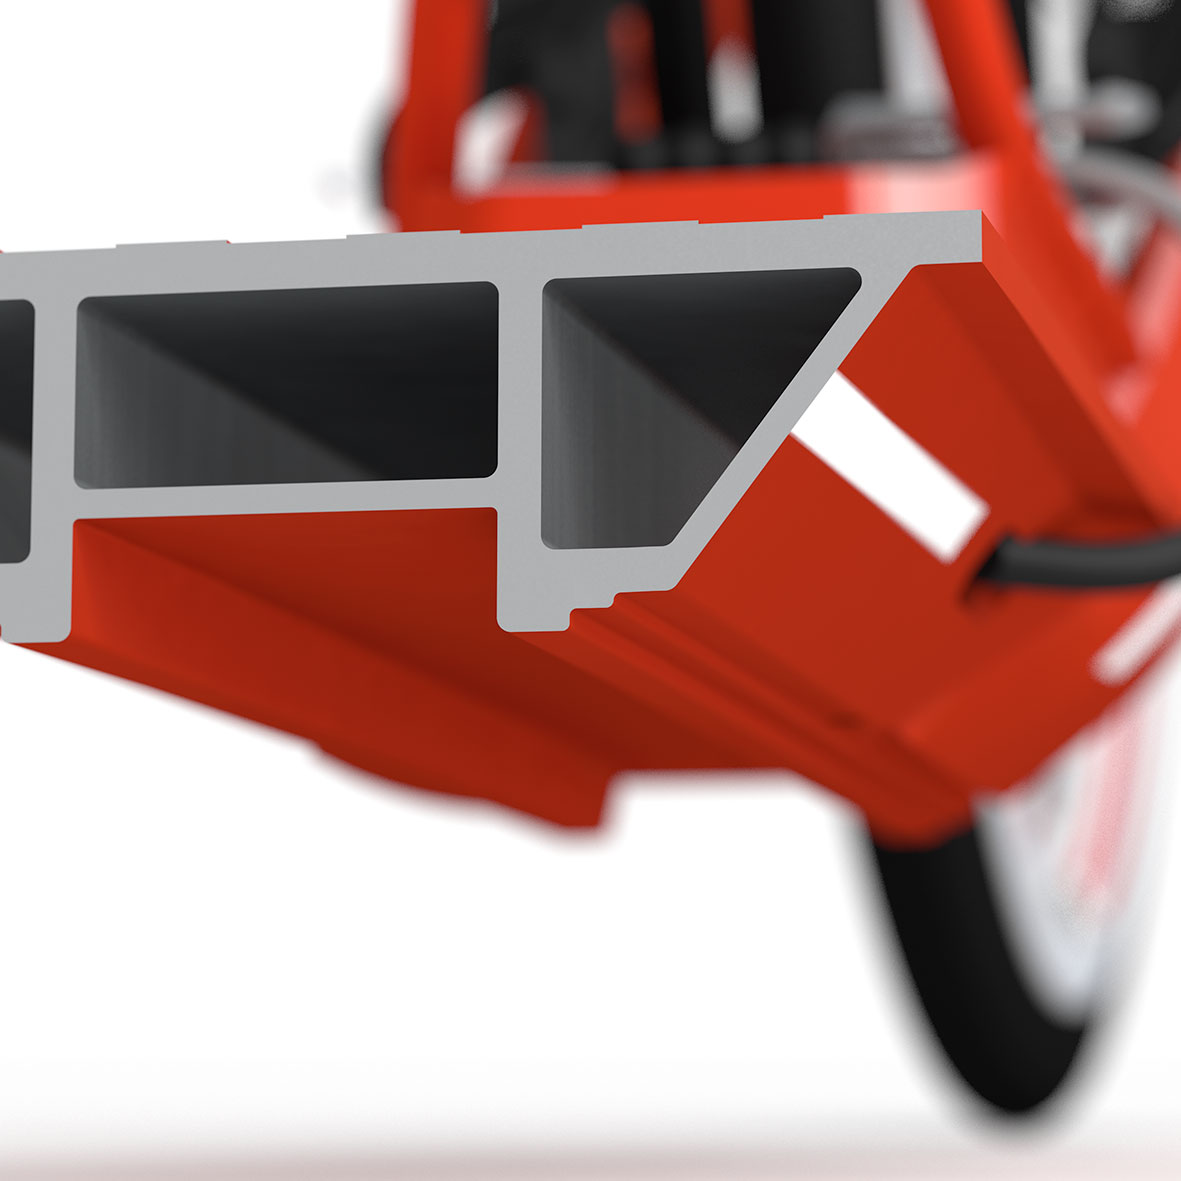 The sophisticated footboard shape minimizes scooter-terrain interface and allows for a safe tilt round bends.